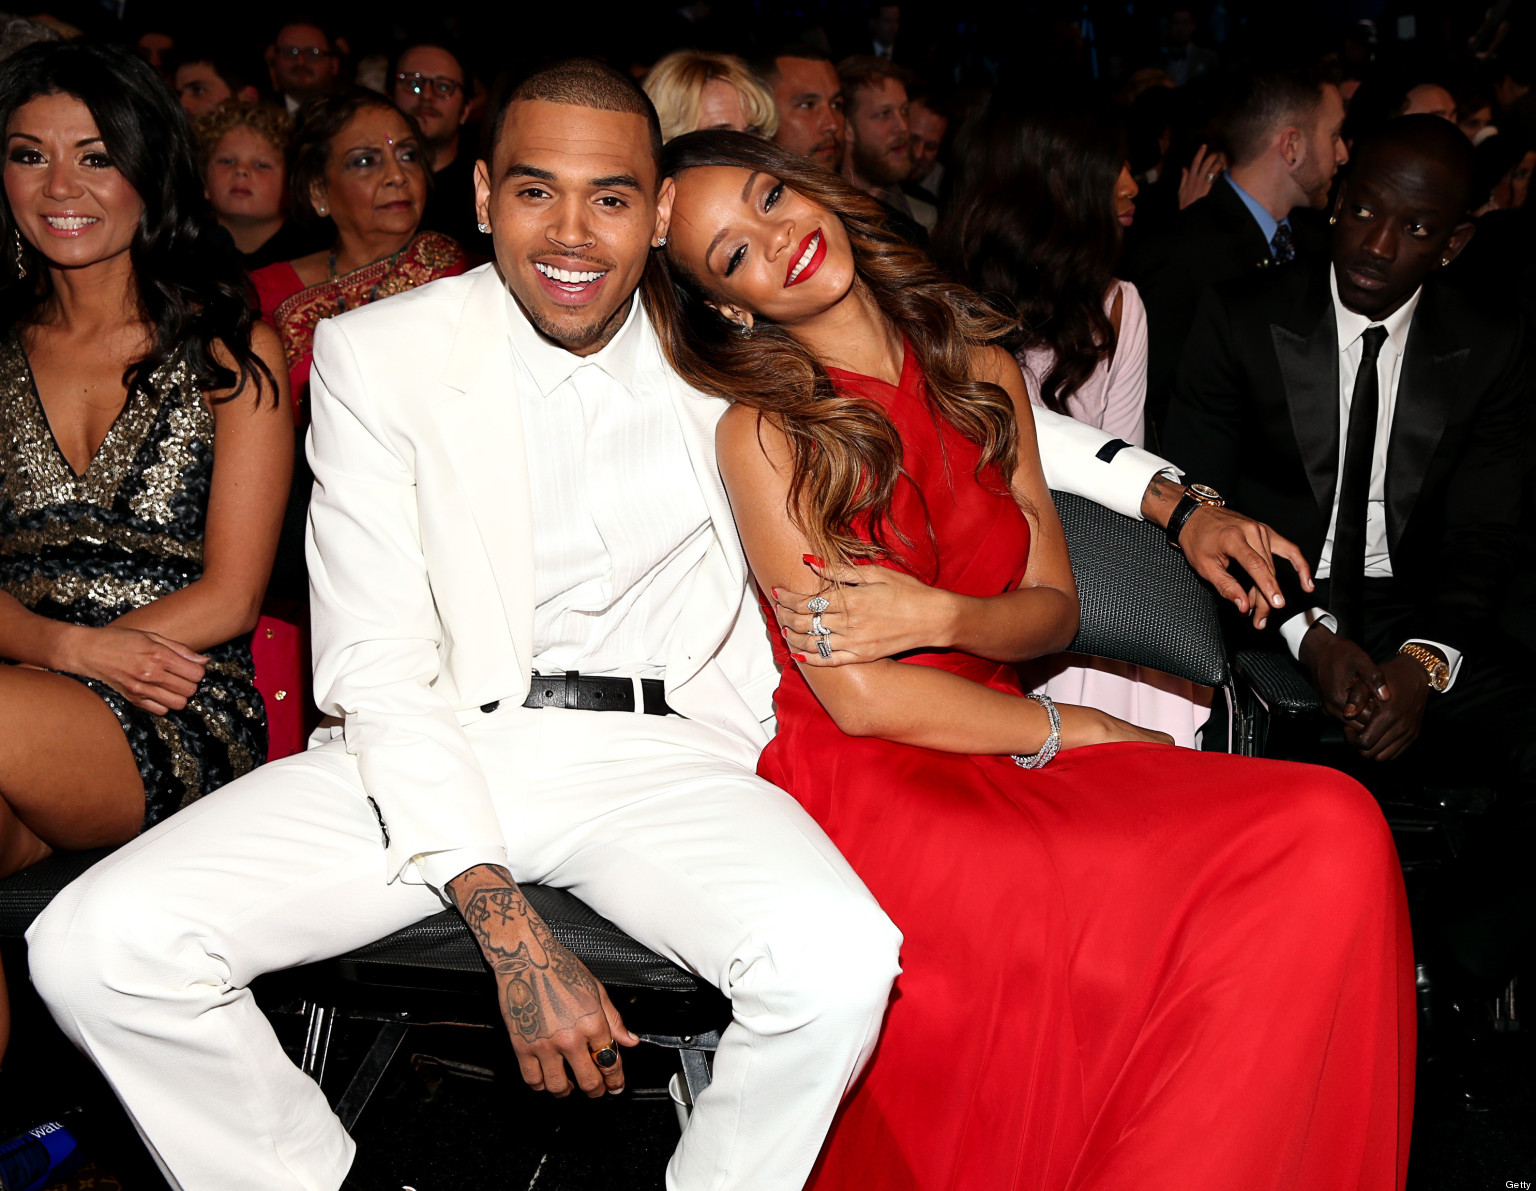 Chris Brown & Rihanna Get Cozy At The Grammys